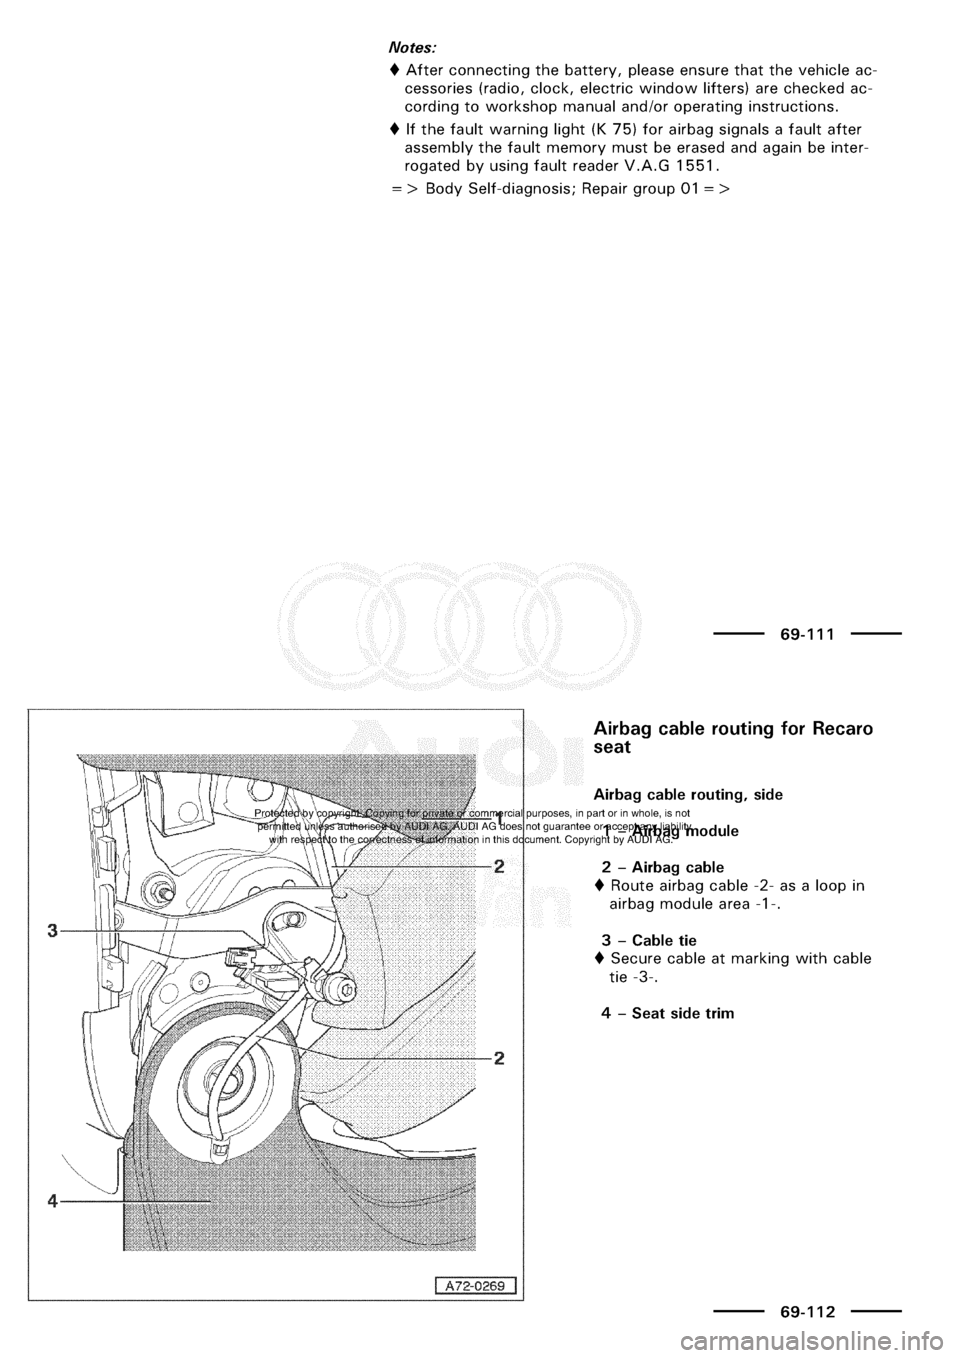 AUDI A3 2001 8L / 1.G General Body Assembly Interior Manual Online